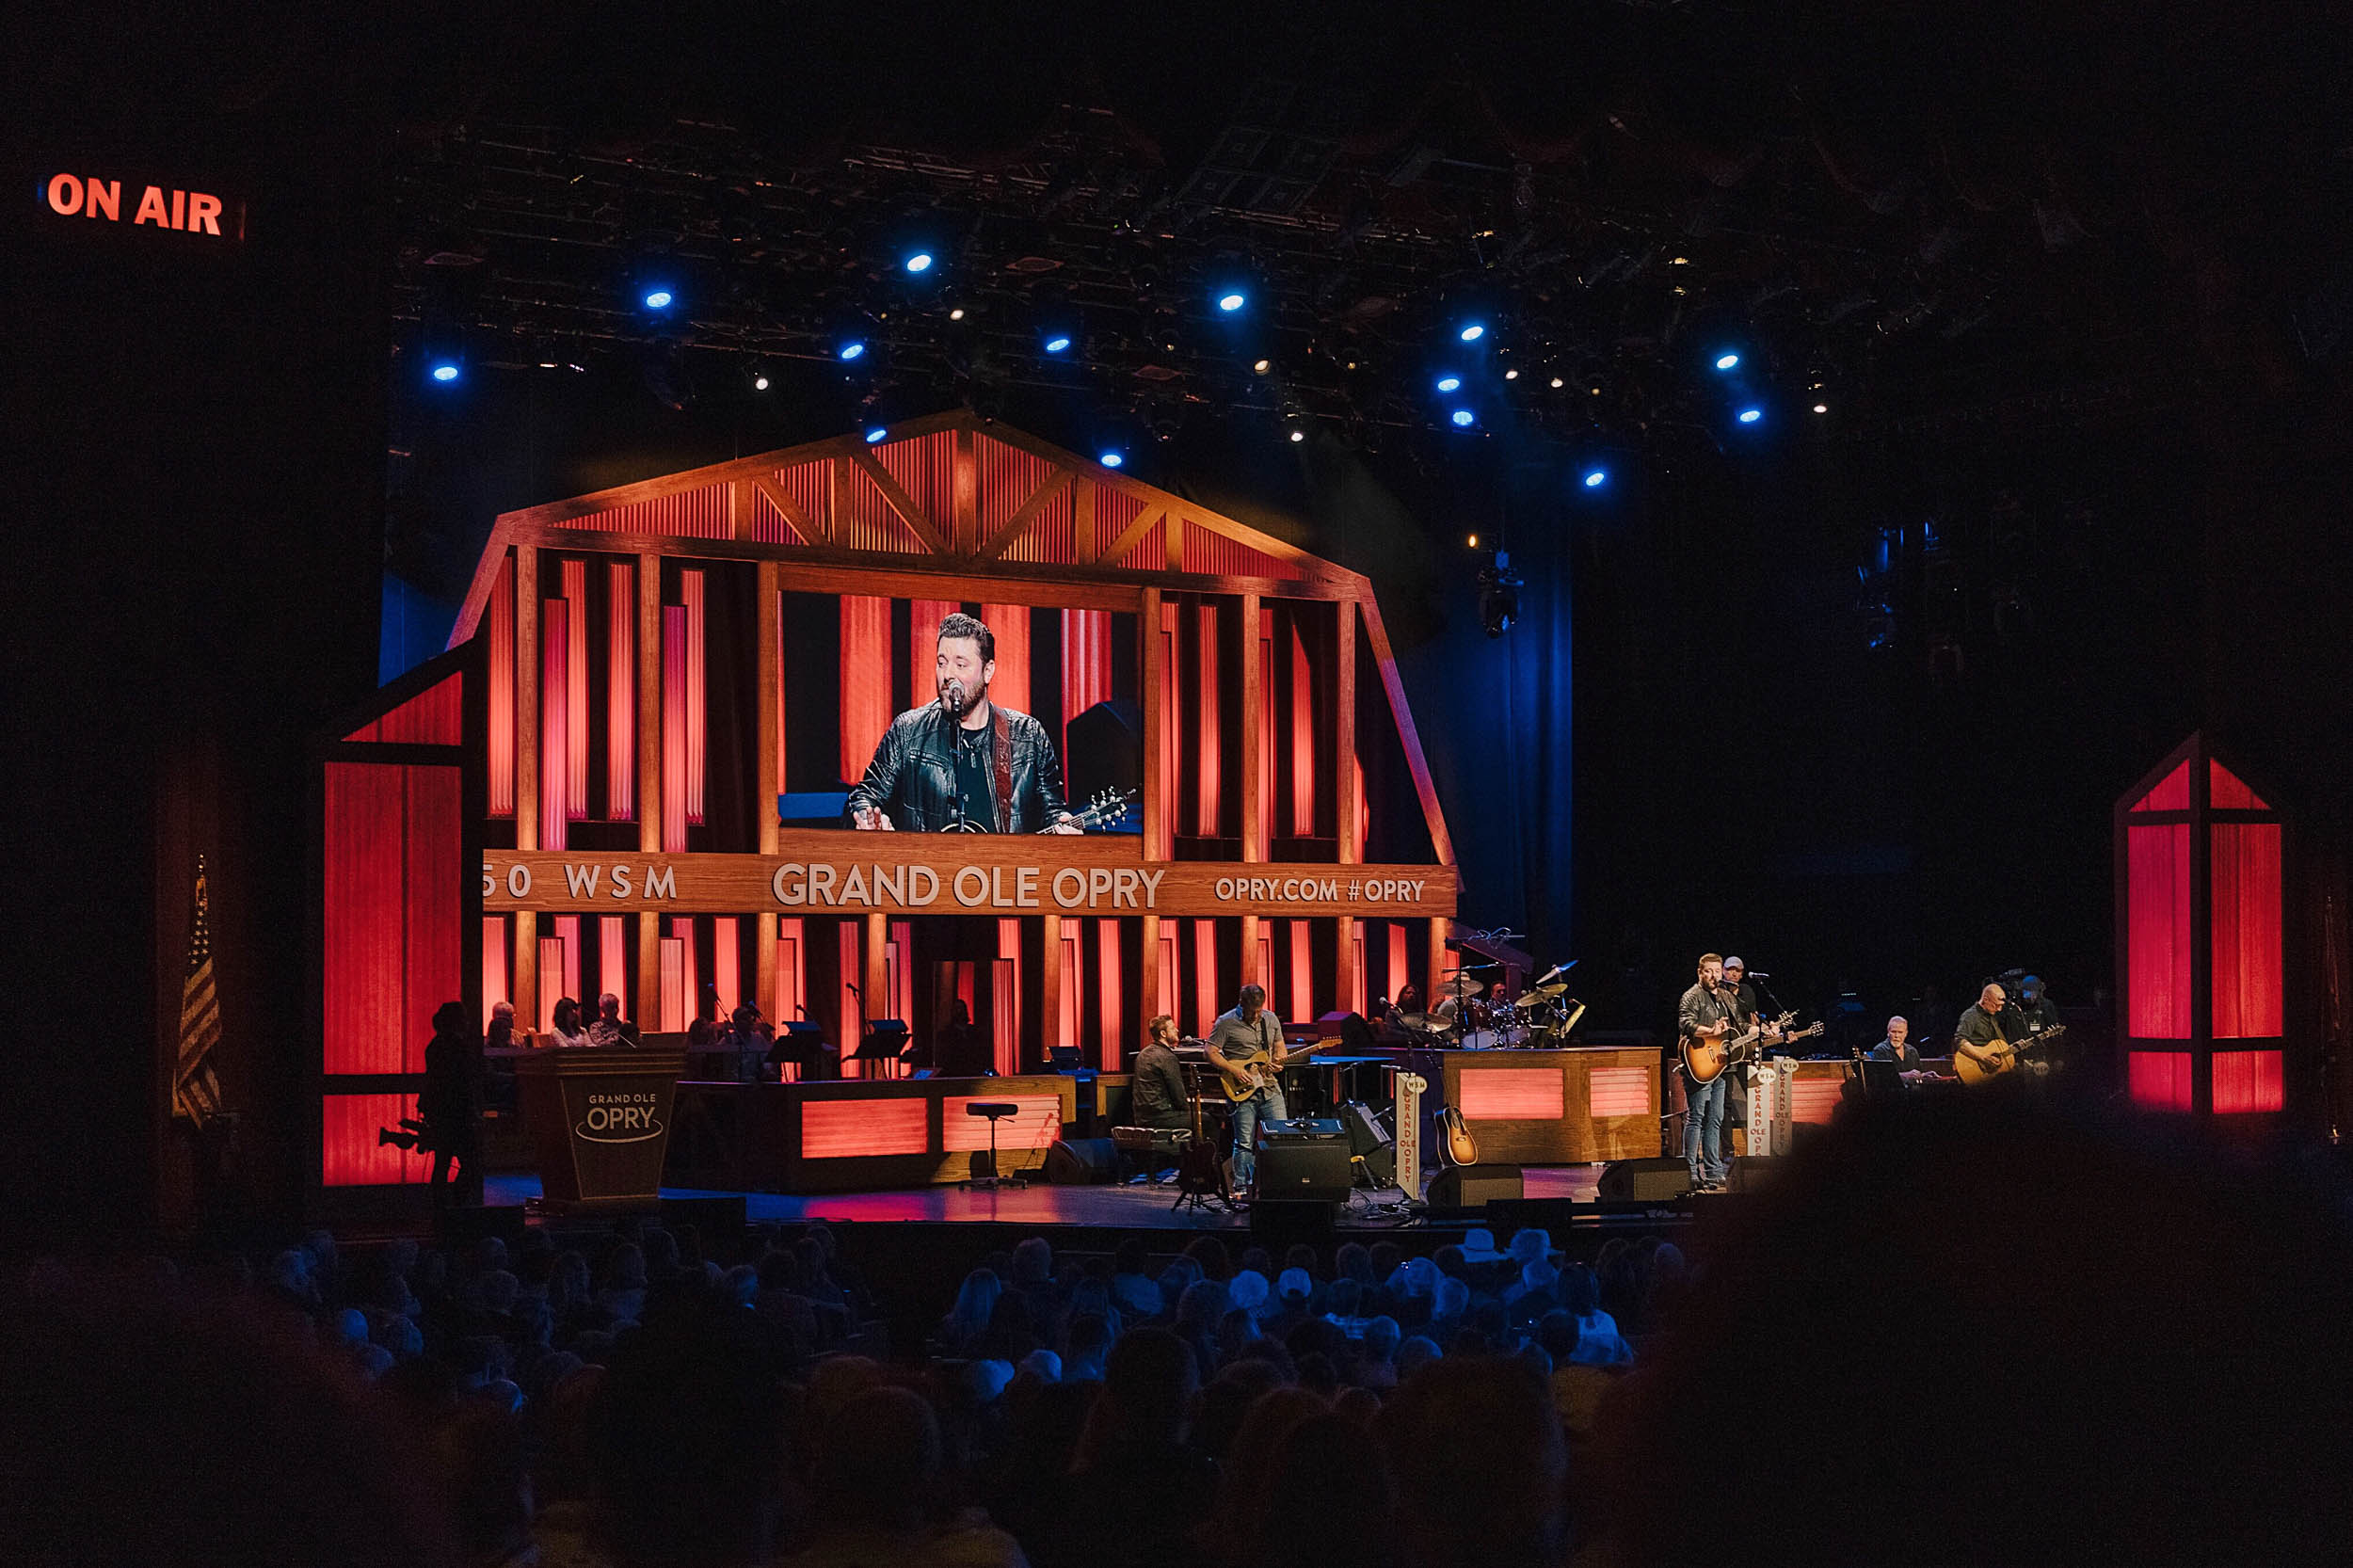 Chris Young headlining at show at the Opry